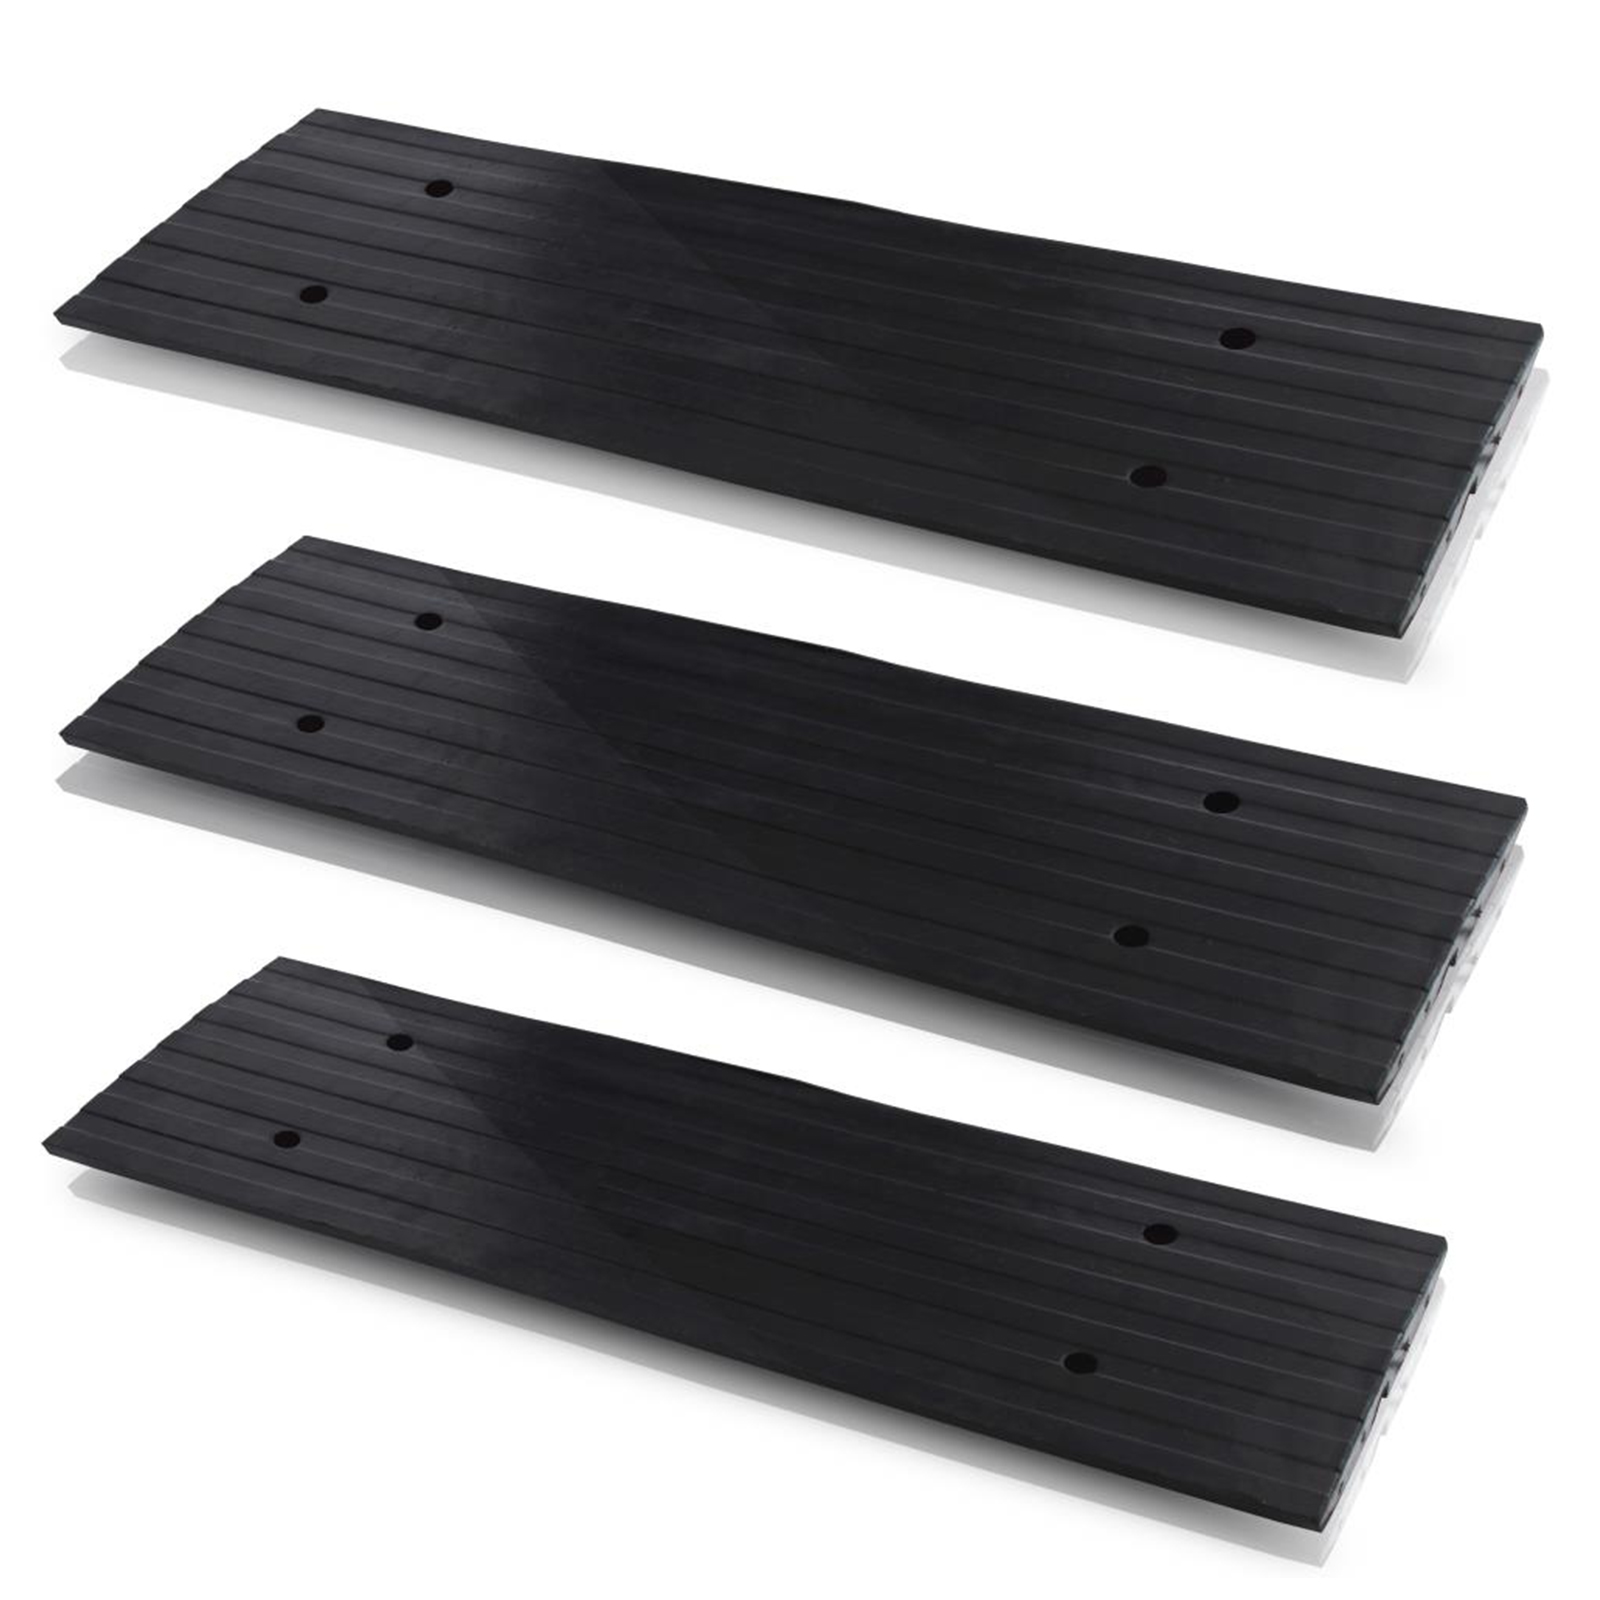 Pyle 3-Piece Vehicle Driveway Curb Ramp